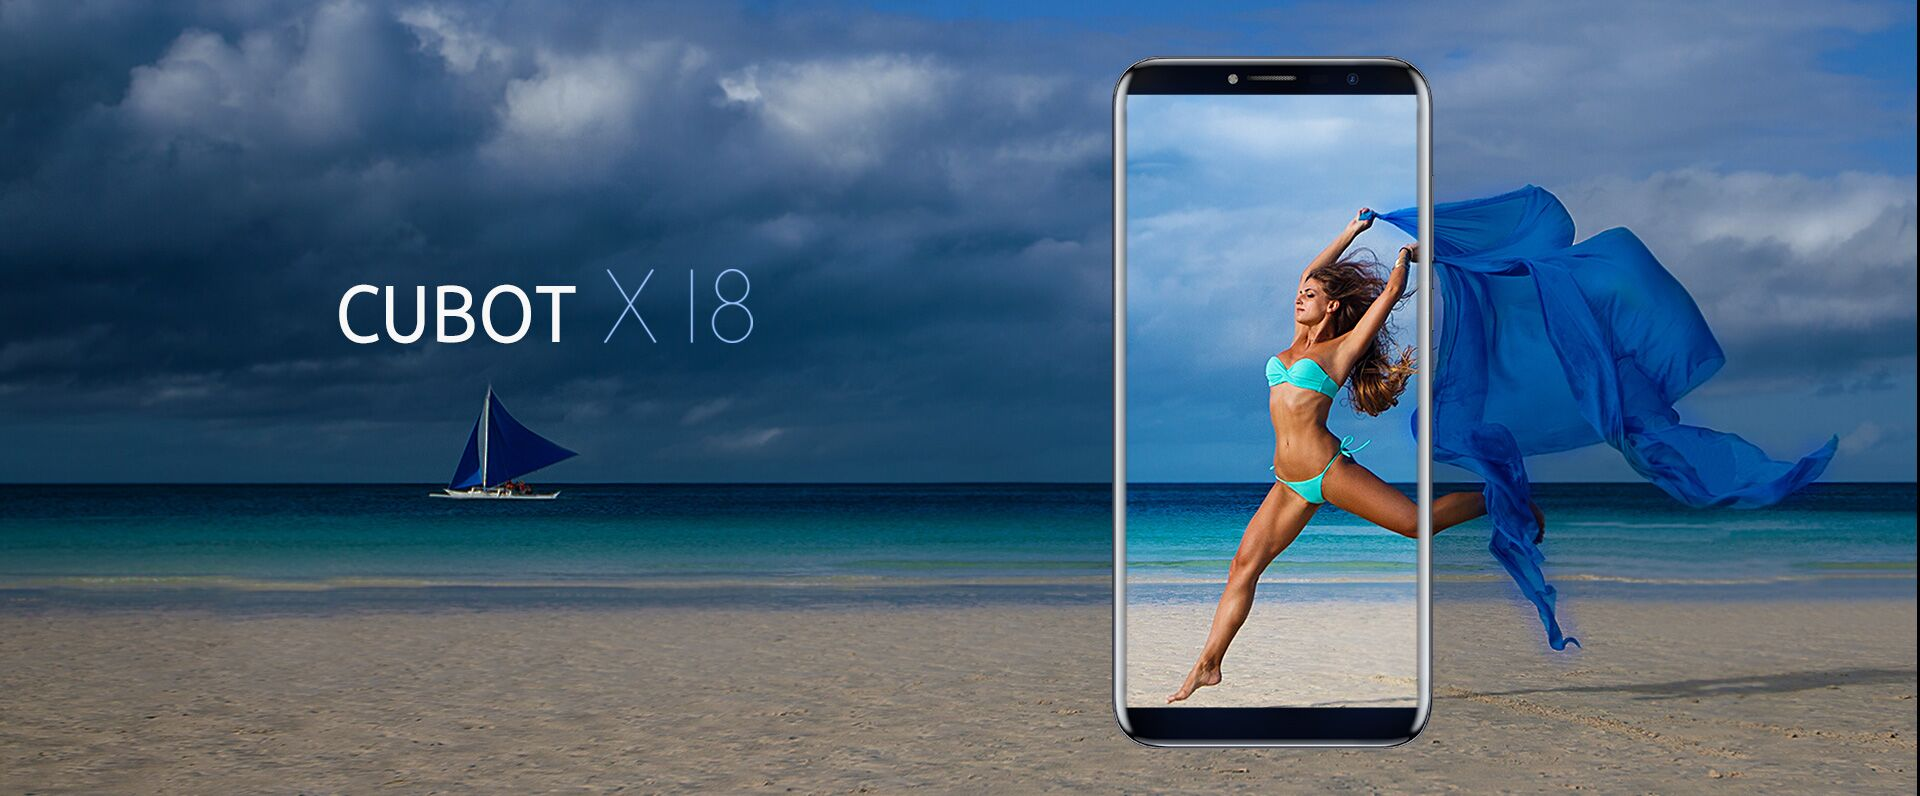 cubot x18, clona de samsung s8, display cu raport 18:9